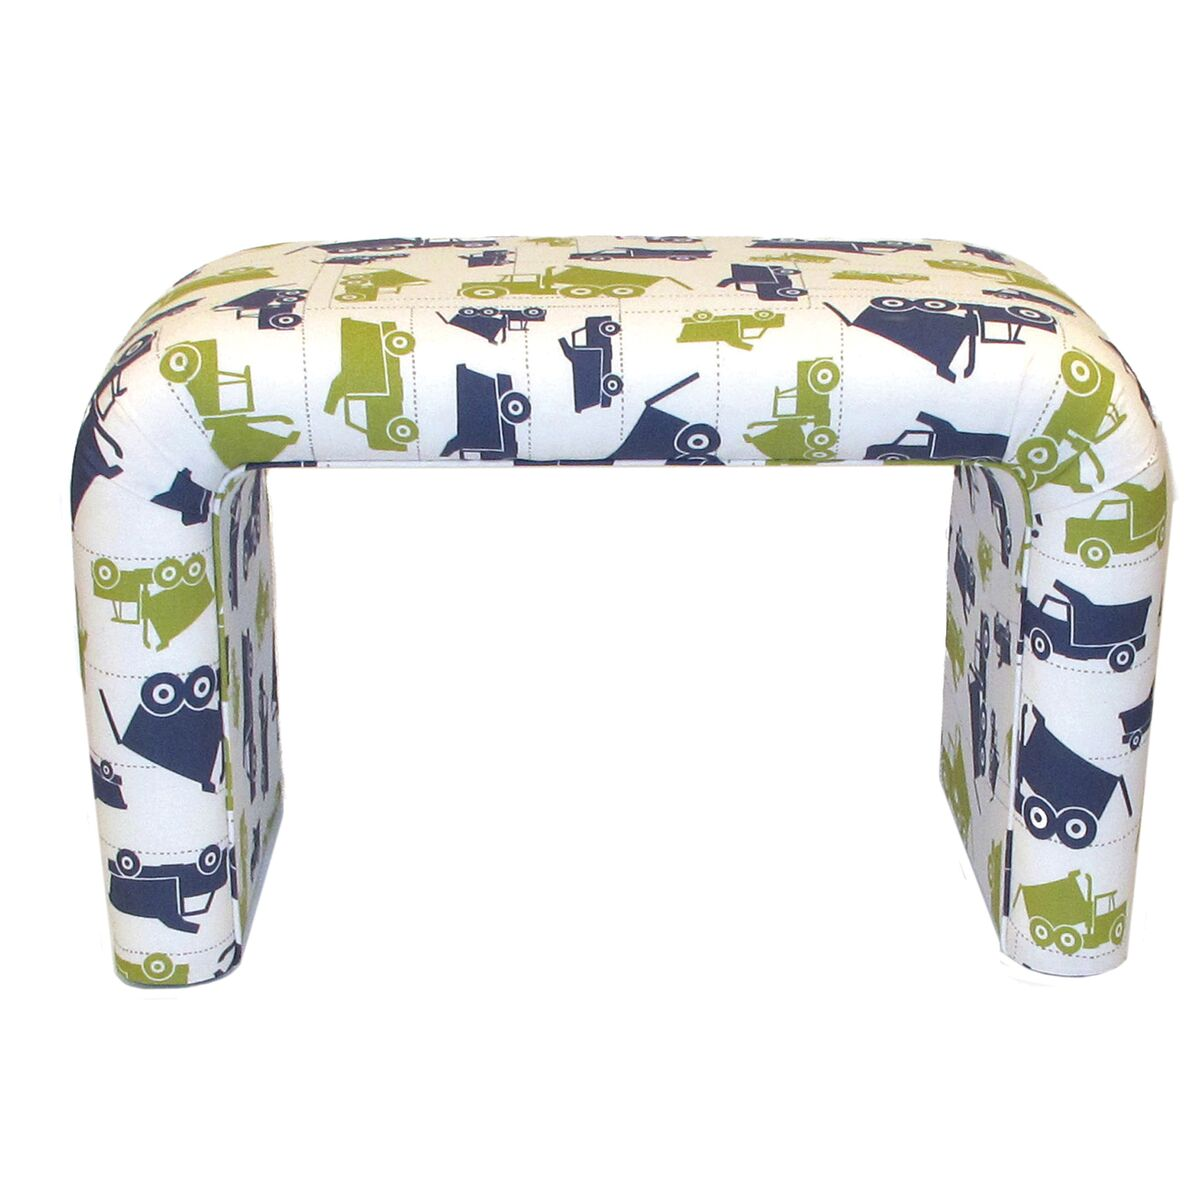 Brighton Home Furniture Dump Truck Cotton U Shaped Bed Bench